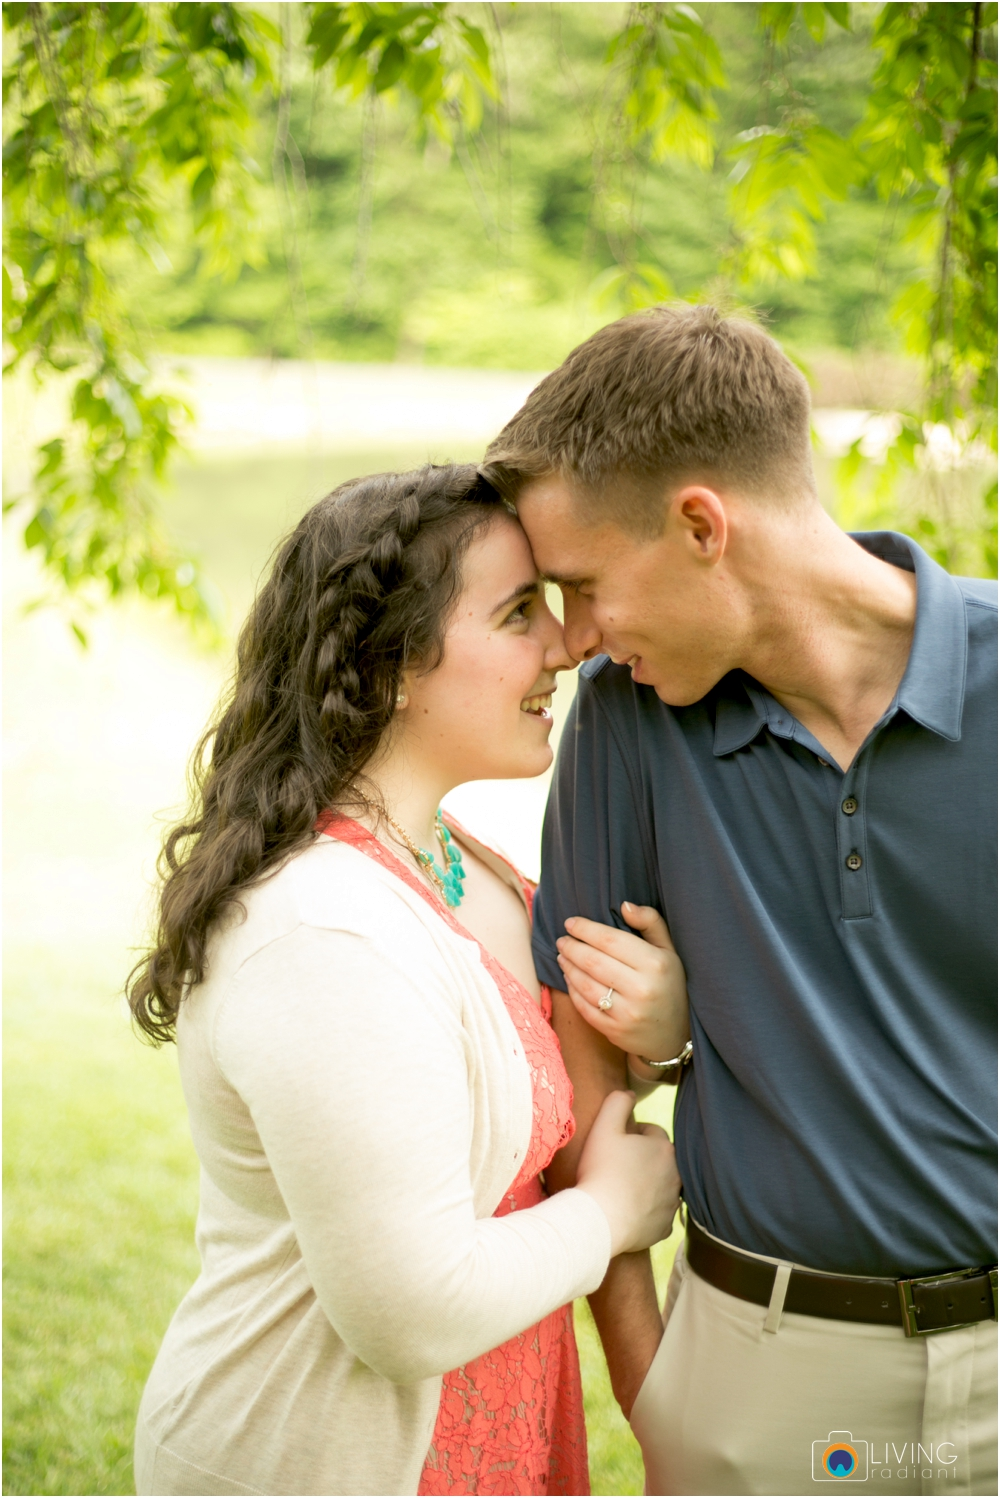 melissa-chris-brookside-gardens-engagement-session-outdoor-gardens-living-radiant-photography-maggie-patrick-nolan_0021.jpg